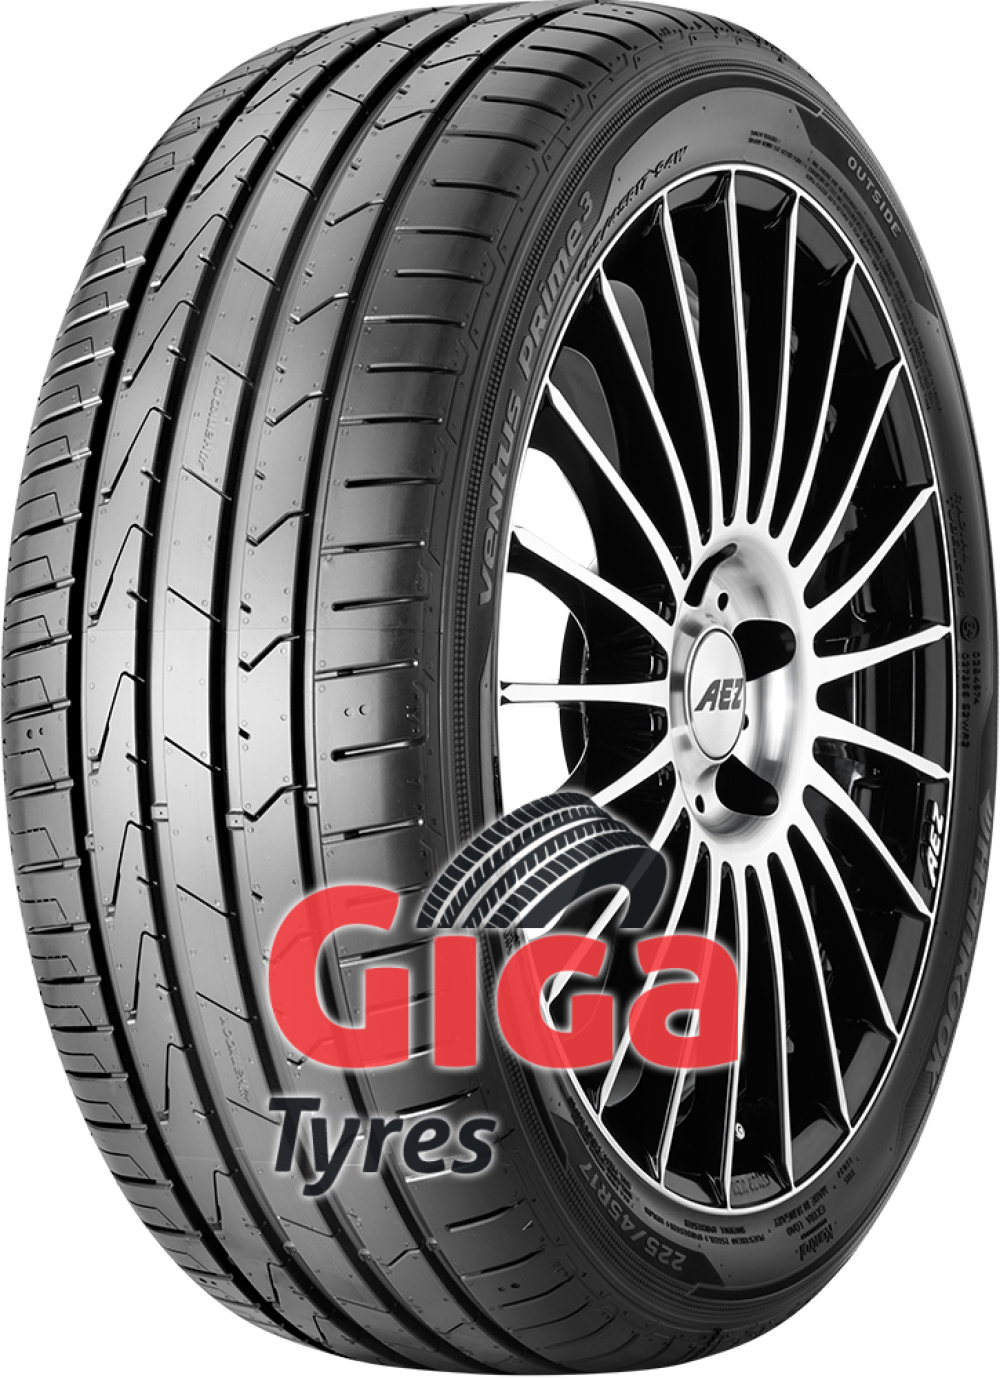 Hankook Ventus Prime 3 K125 ( 245/40 R18 97Y XL with rim protection (MFS) )